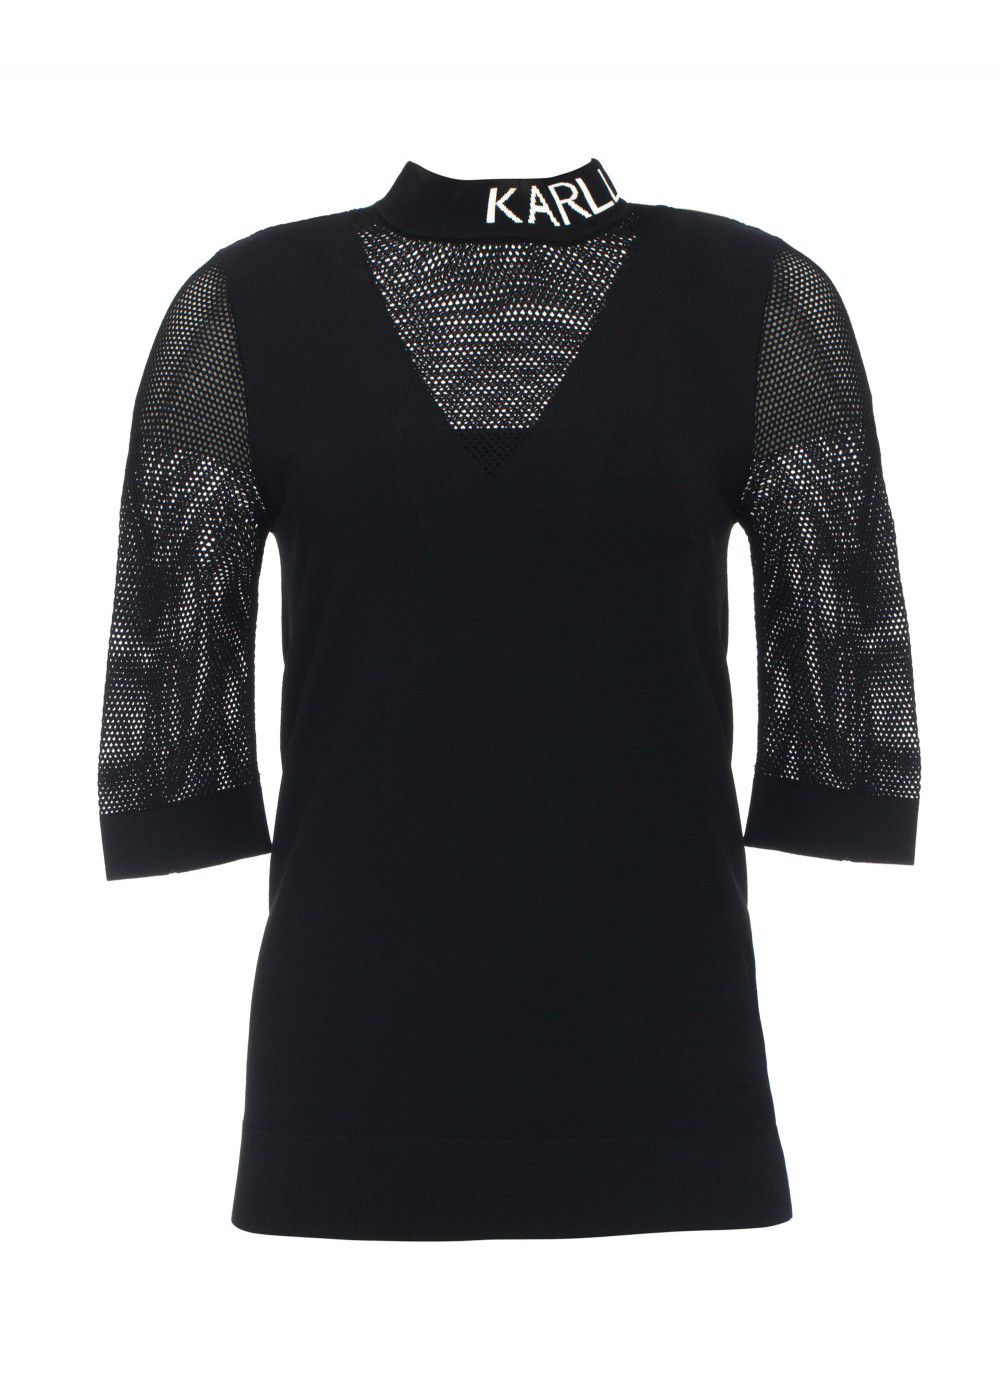 Karl Lagerfeld Logo Mesh Shirt in Black